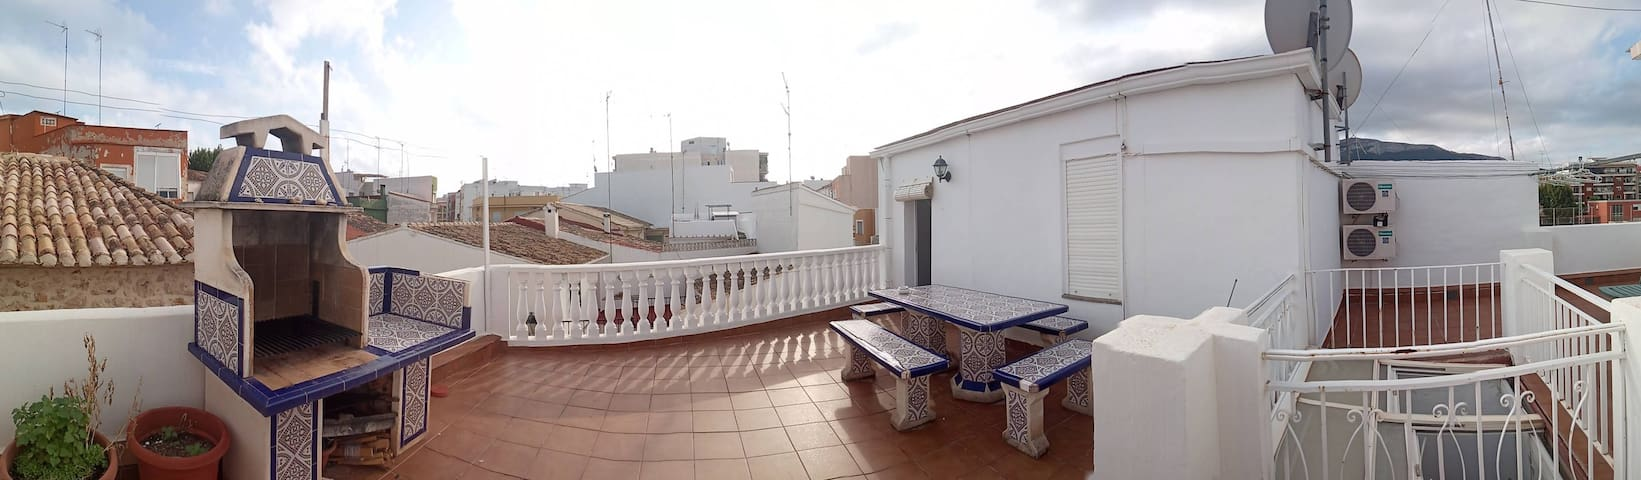 Airbnb Setla Vacation Rentals Places To Stay